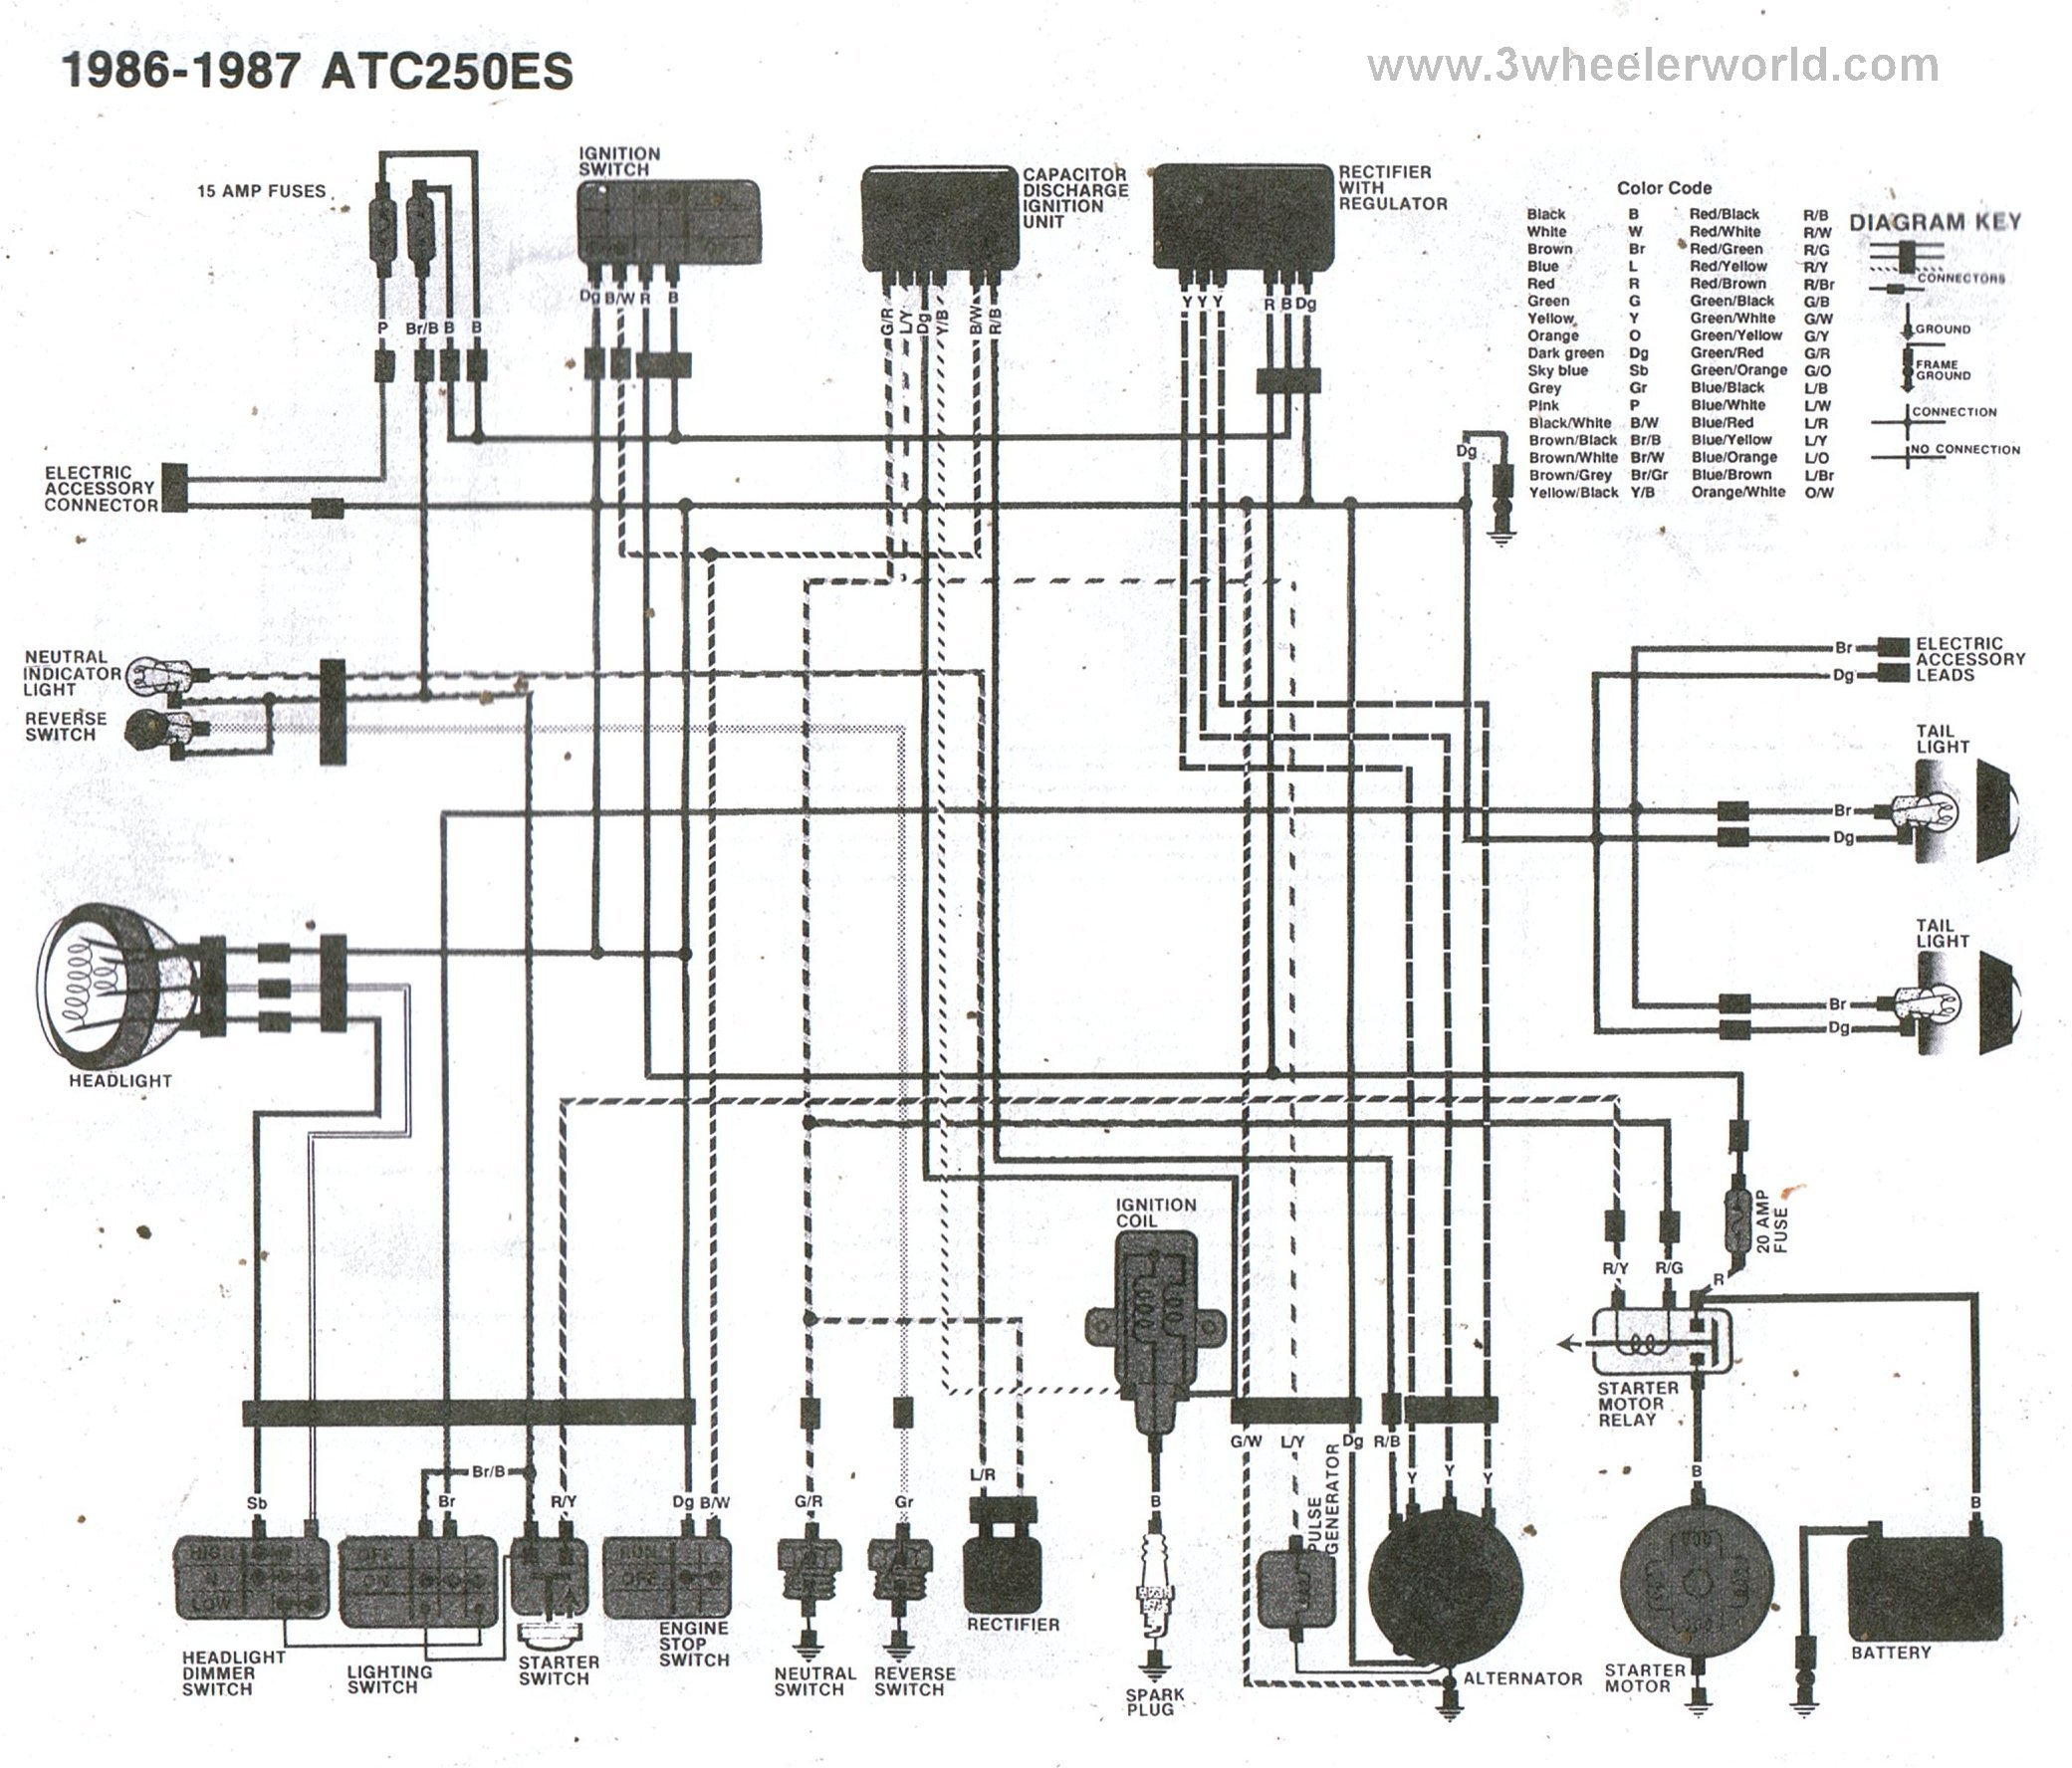 ATC250ESx86Thru87 3 wheeler world tech help honda wiring diagrams wiring diagram 1985 honda 250 fourtrax at bayanpartner.co